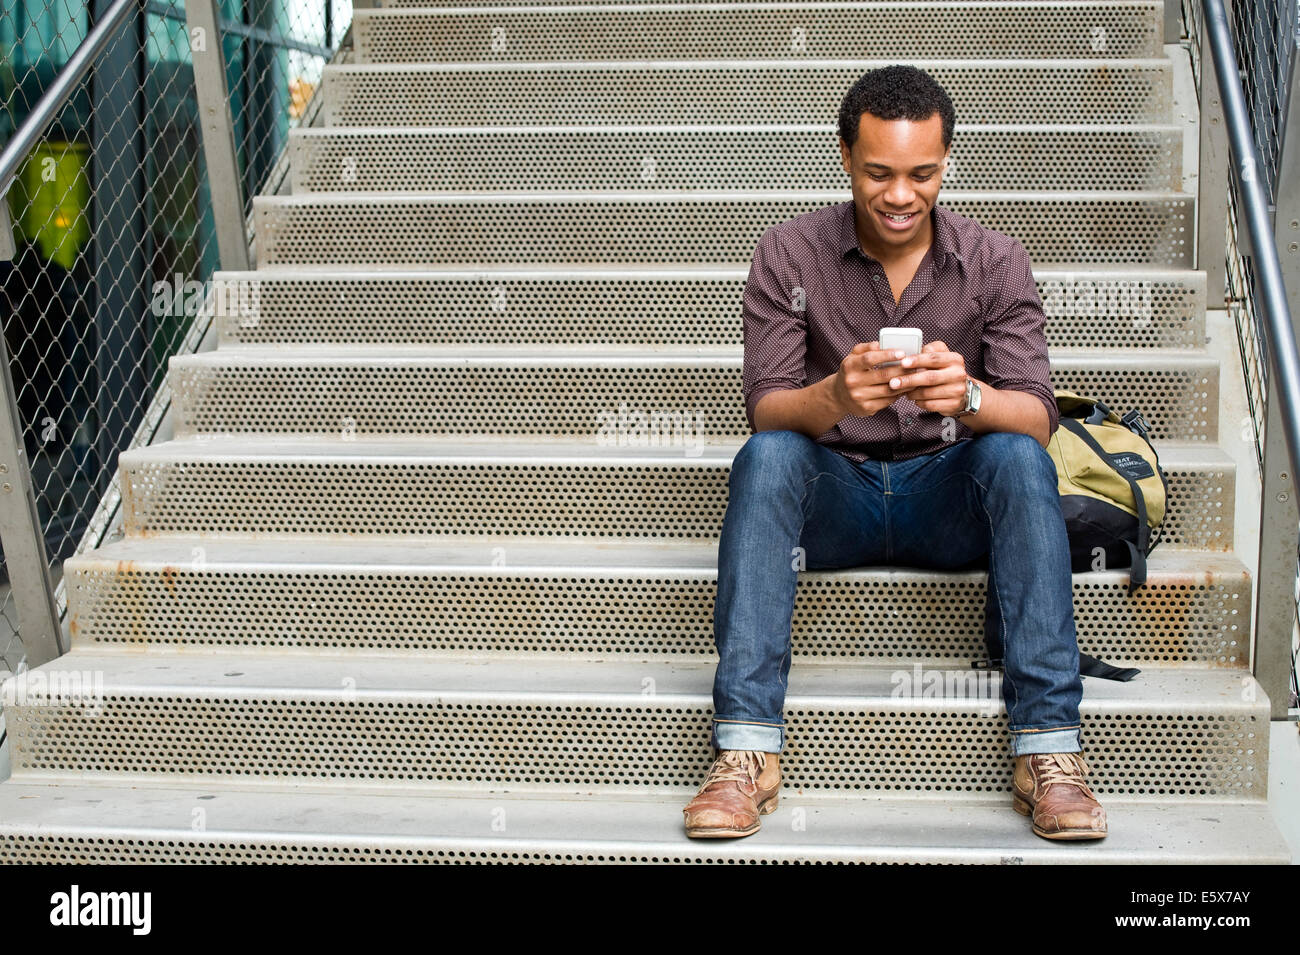 Young man texting on smartphone on city stairway - Stock Image